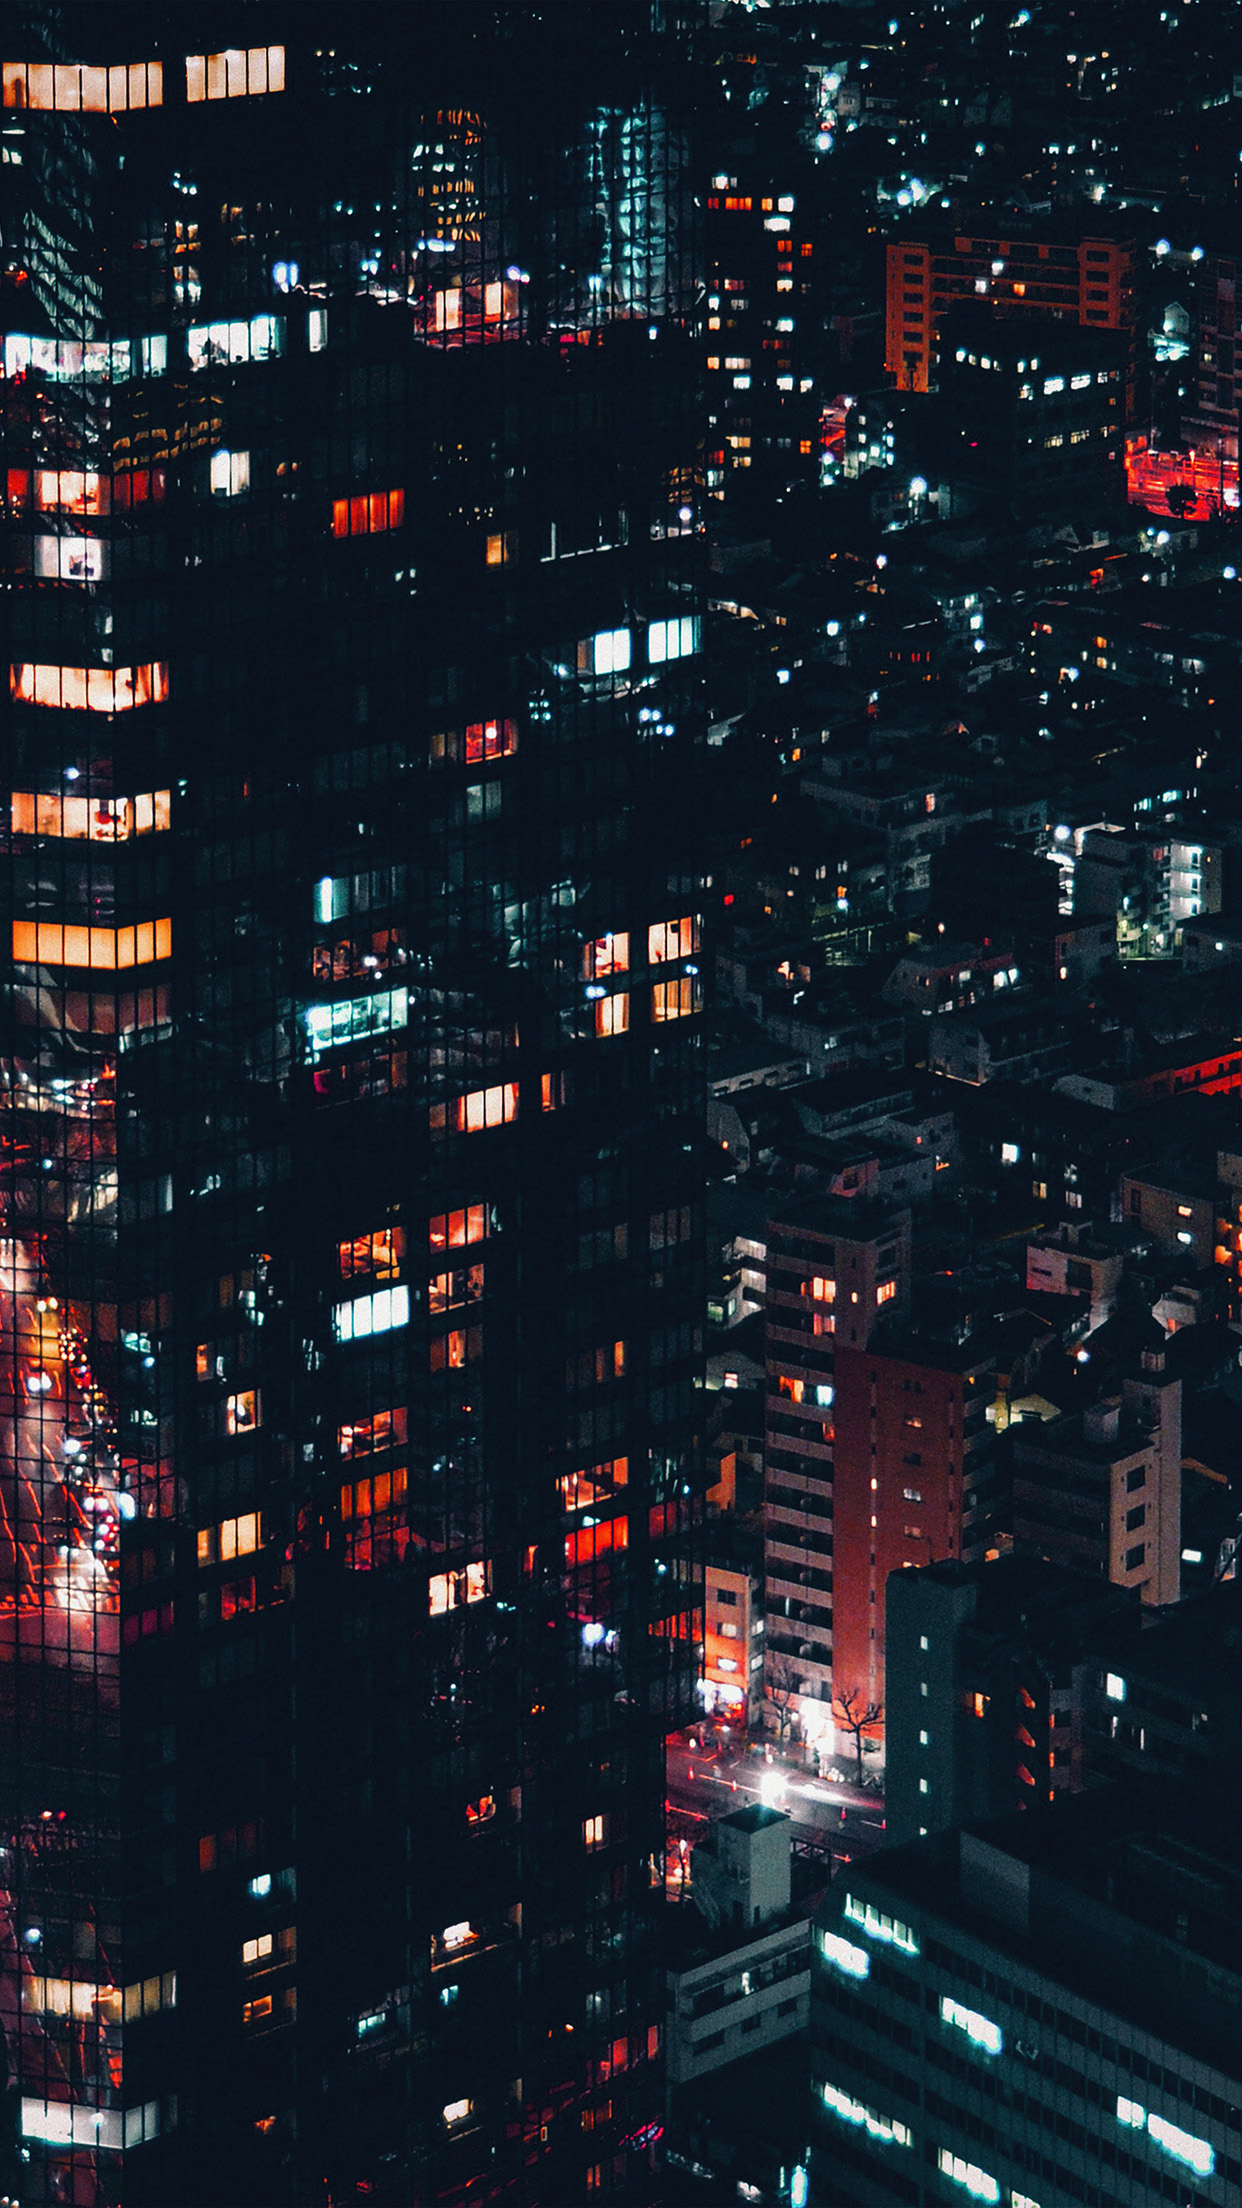 iphone6papers | iphone 6 wallpaper | nf86-city-night-lights